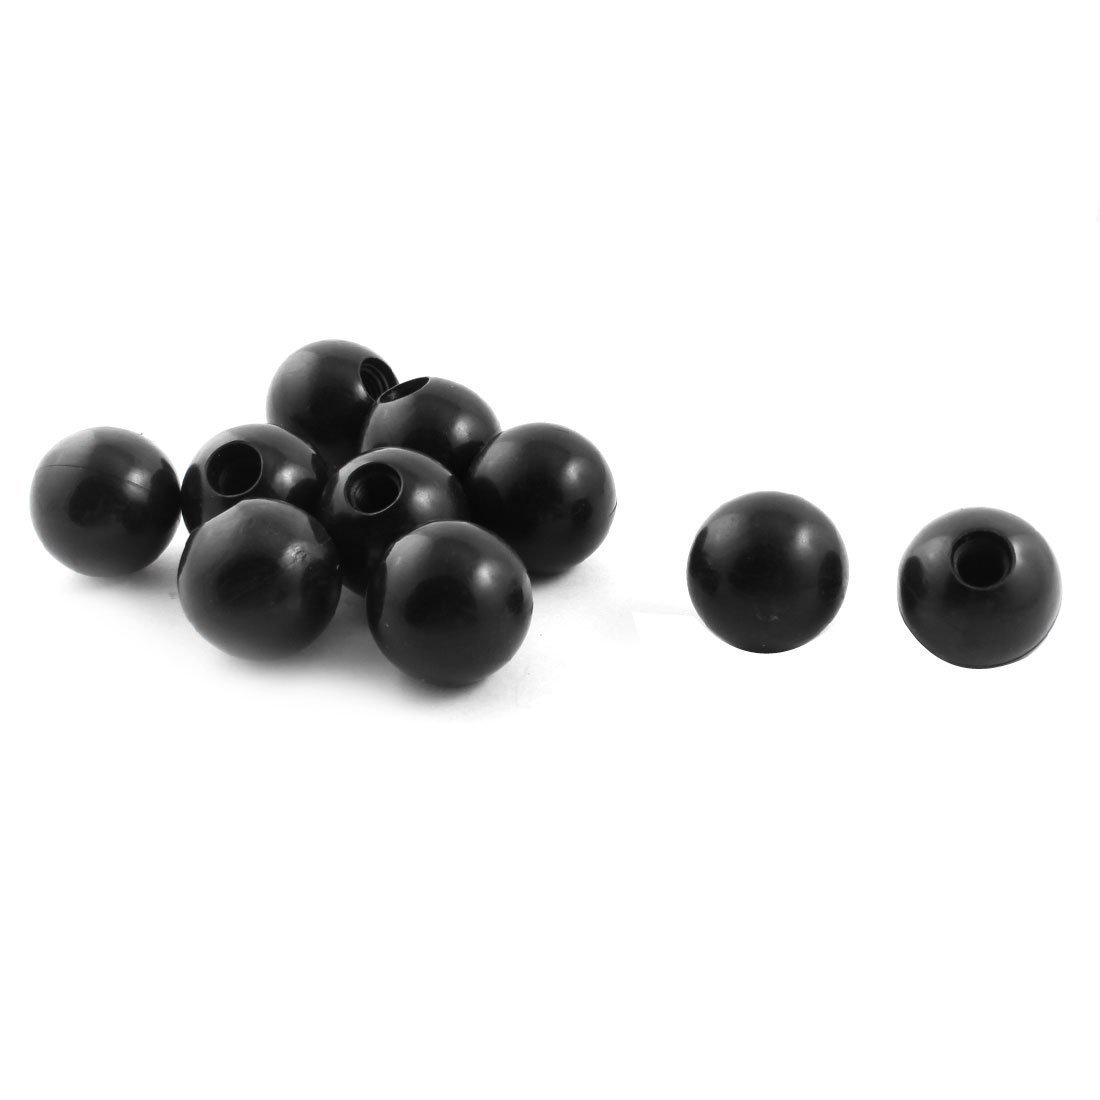 sourcingmap 10Pcs M10 Female Threaded Mounted 32mm Dia Ball Lever Knobs Black a14092200ux1264